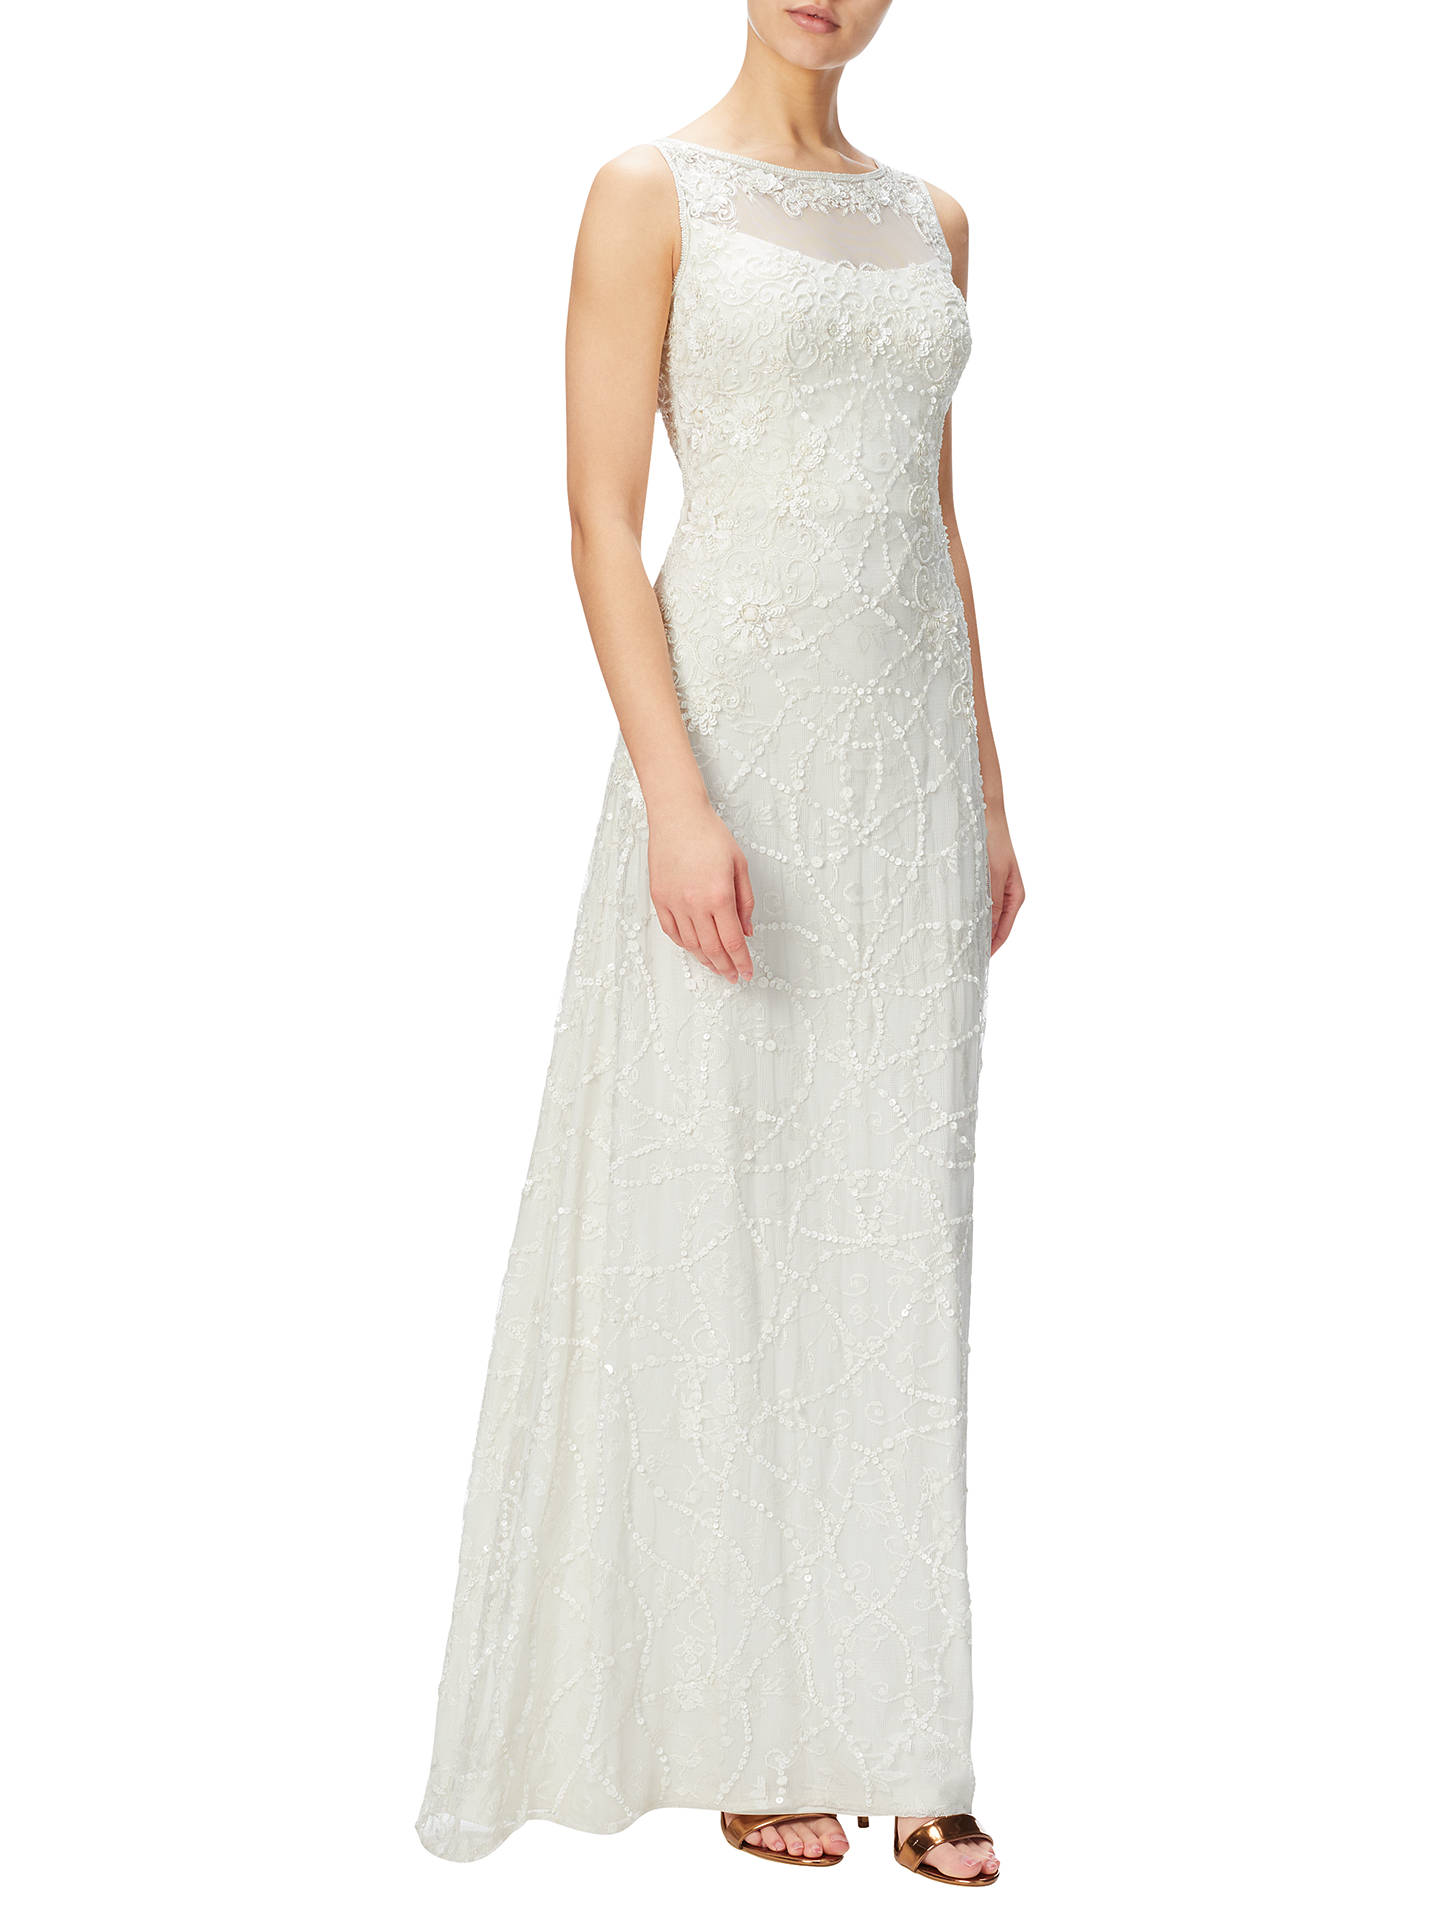 Adrianna Papell Illusion Beaded Lace Gown, Ivory at John Lewis ...